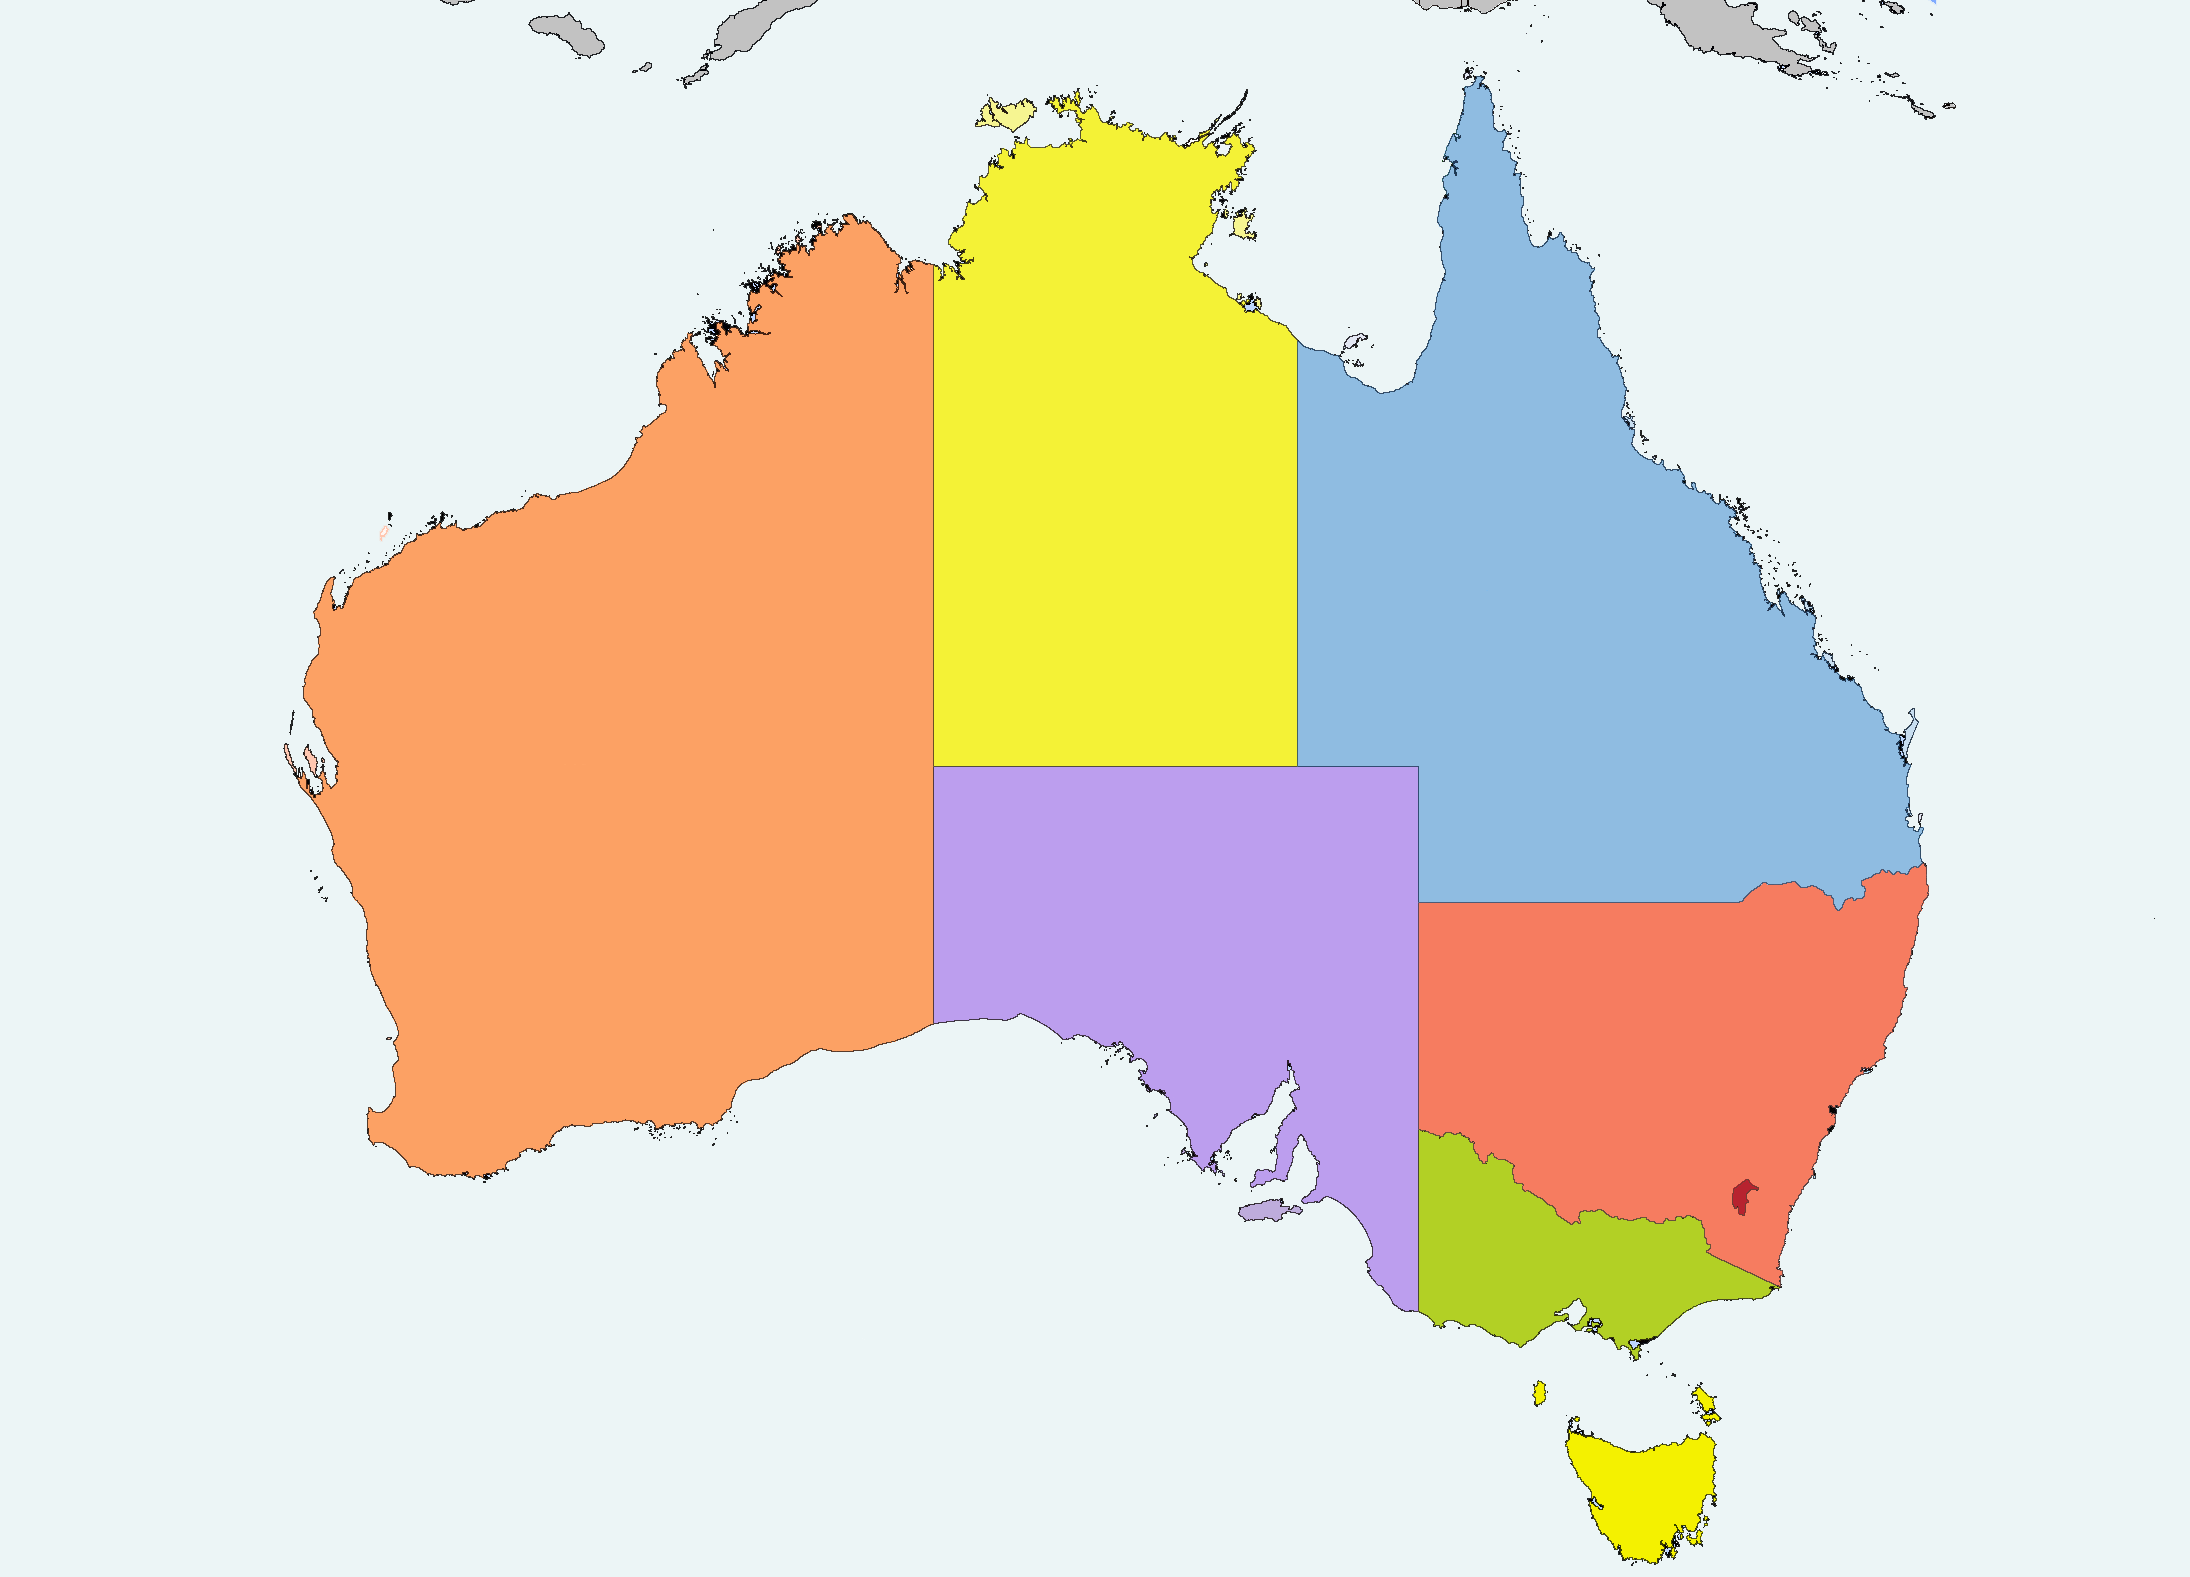 Description australia location map recolored